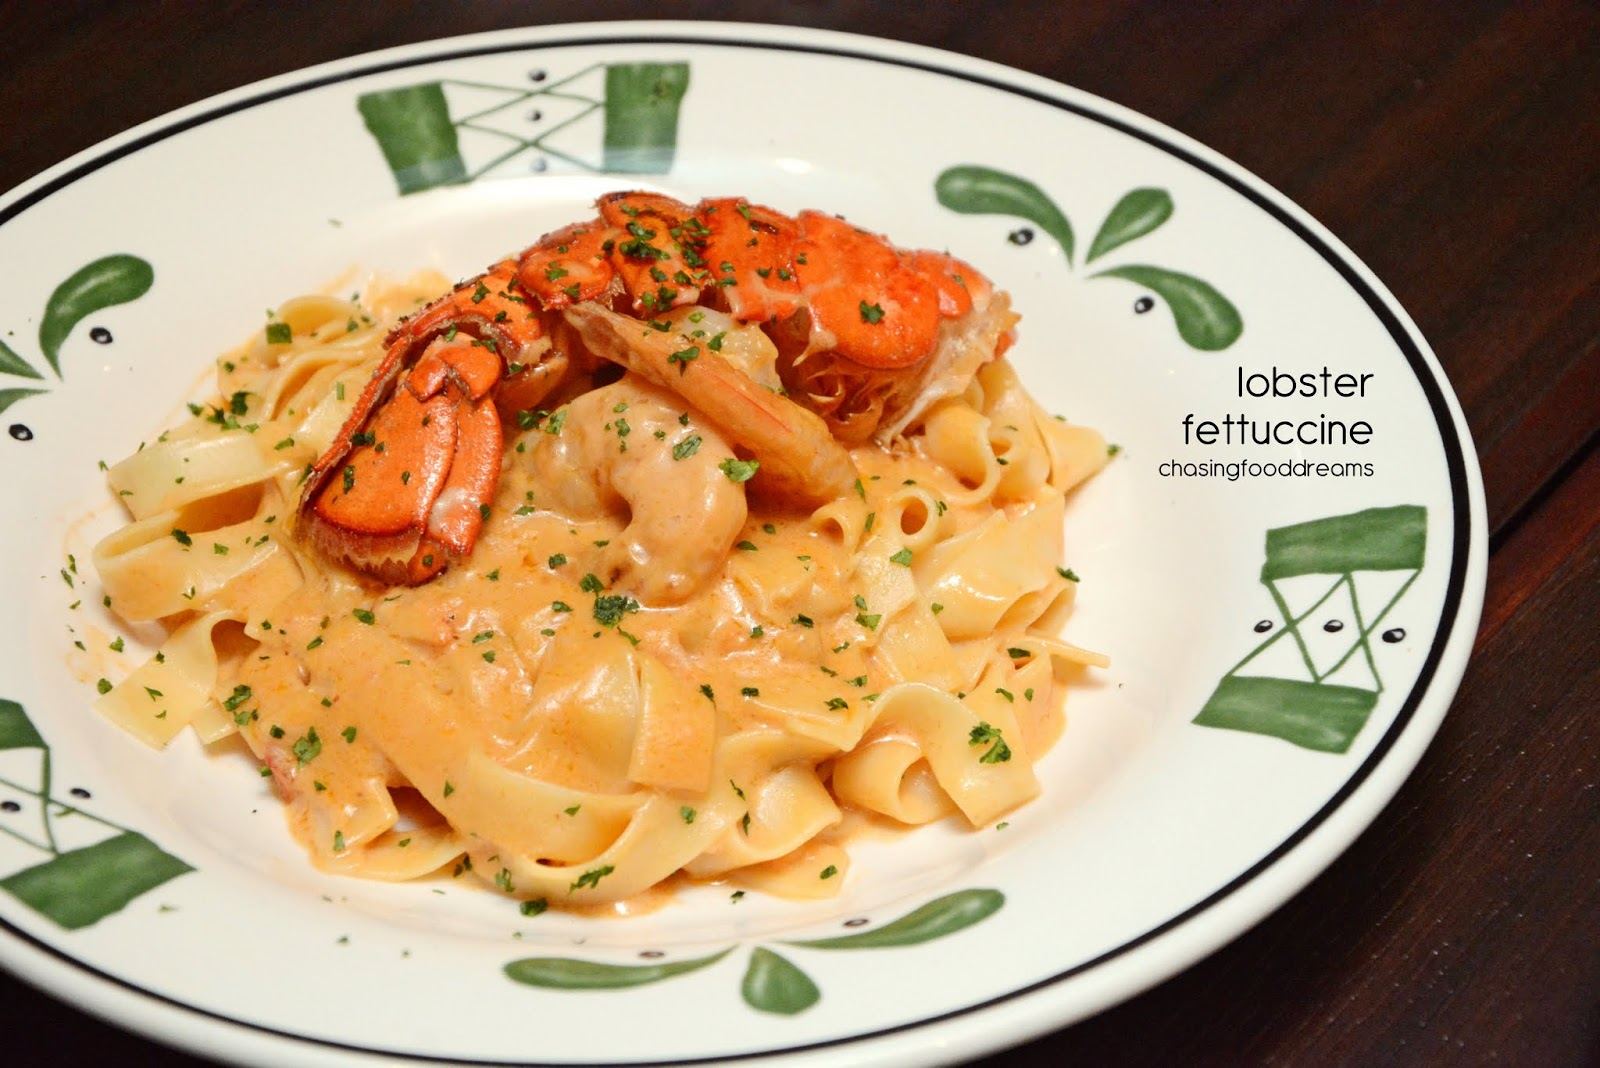 If You Are Up For A Treat Of The King Of Crustaceans, Olive Garden Has A  Scrumptious Lobster Fettuccine (RM53.90) That Seafood Lovers Will Rejoice  In ...